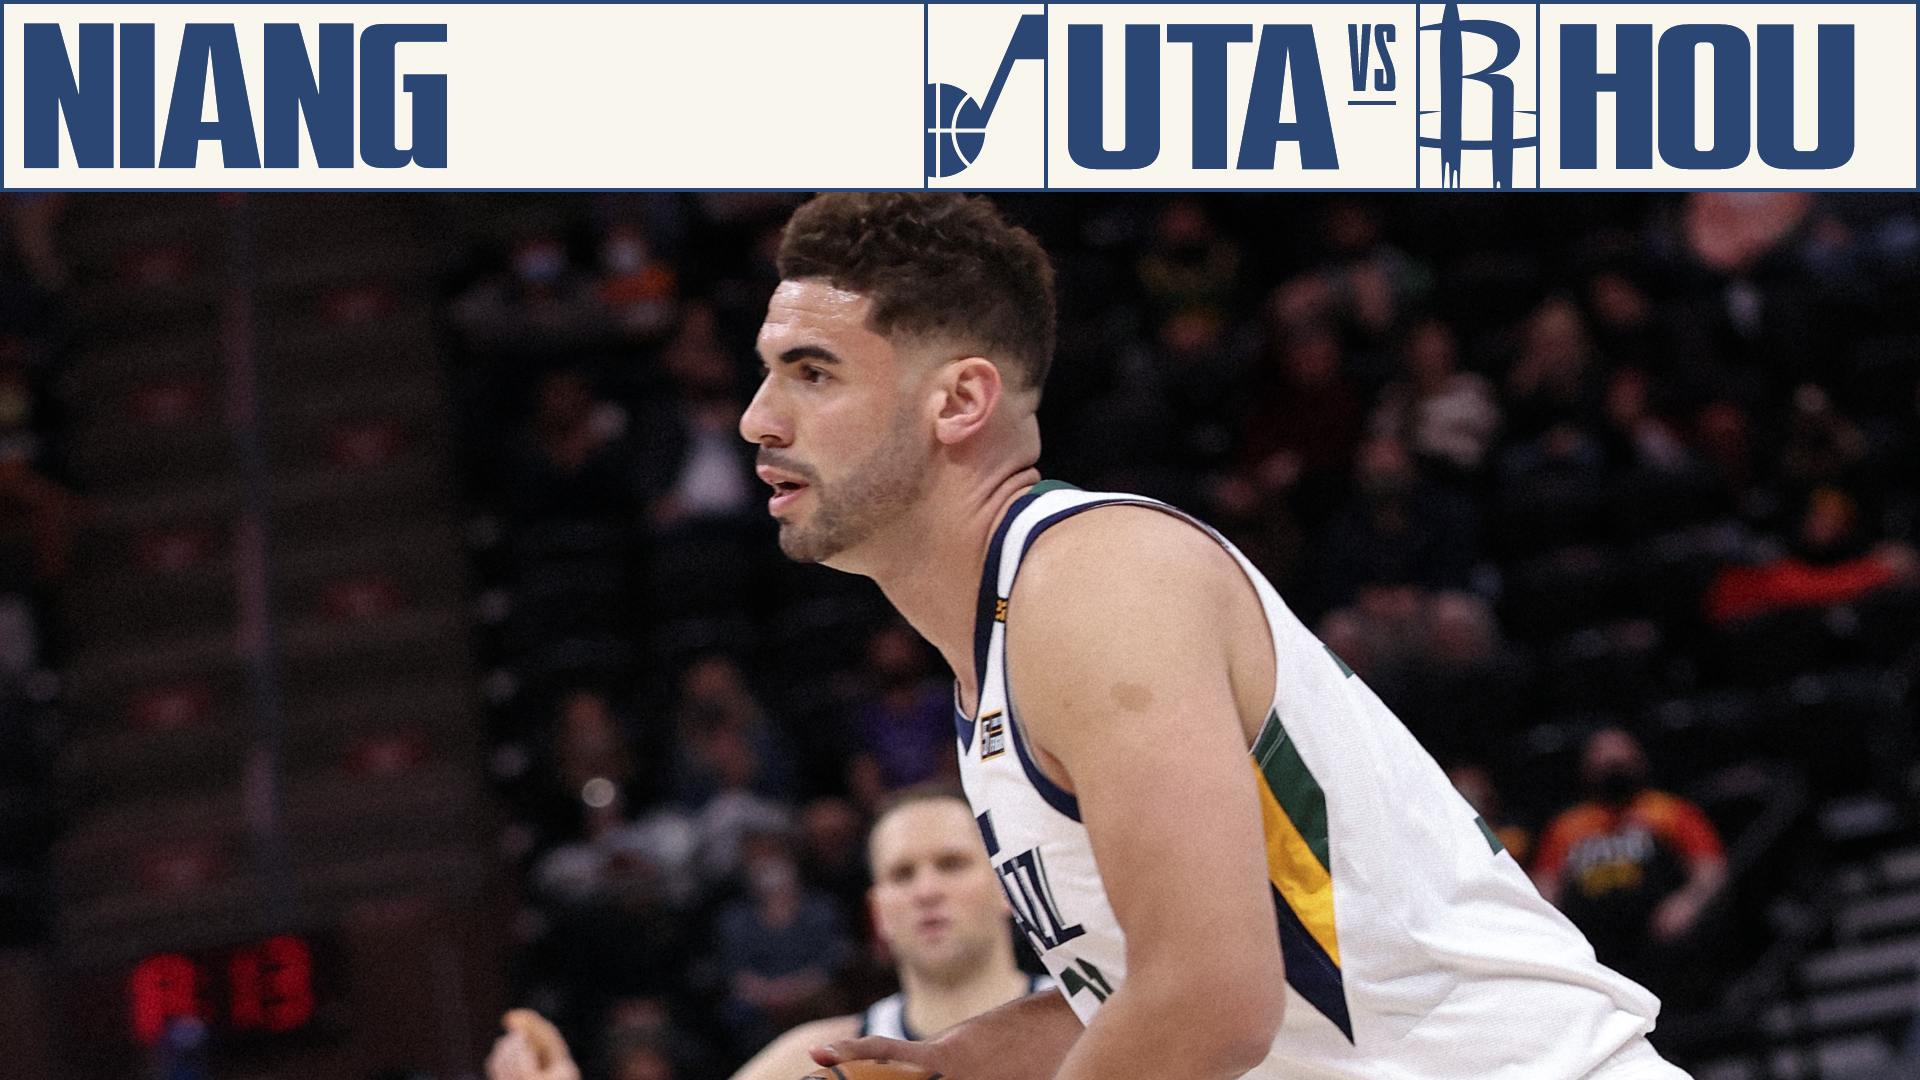 Highlights: Georges Niang—24 points, 6 3pm